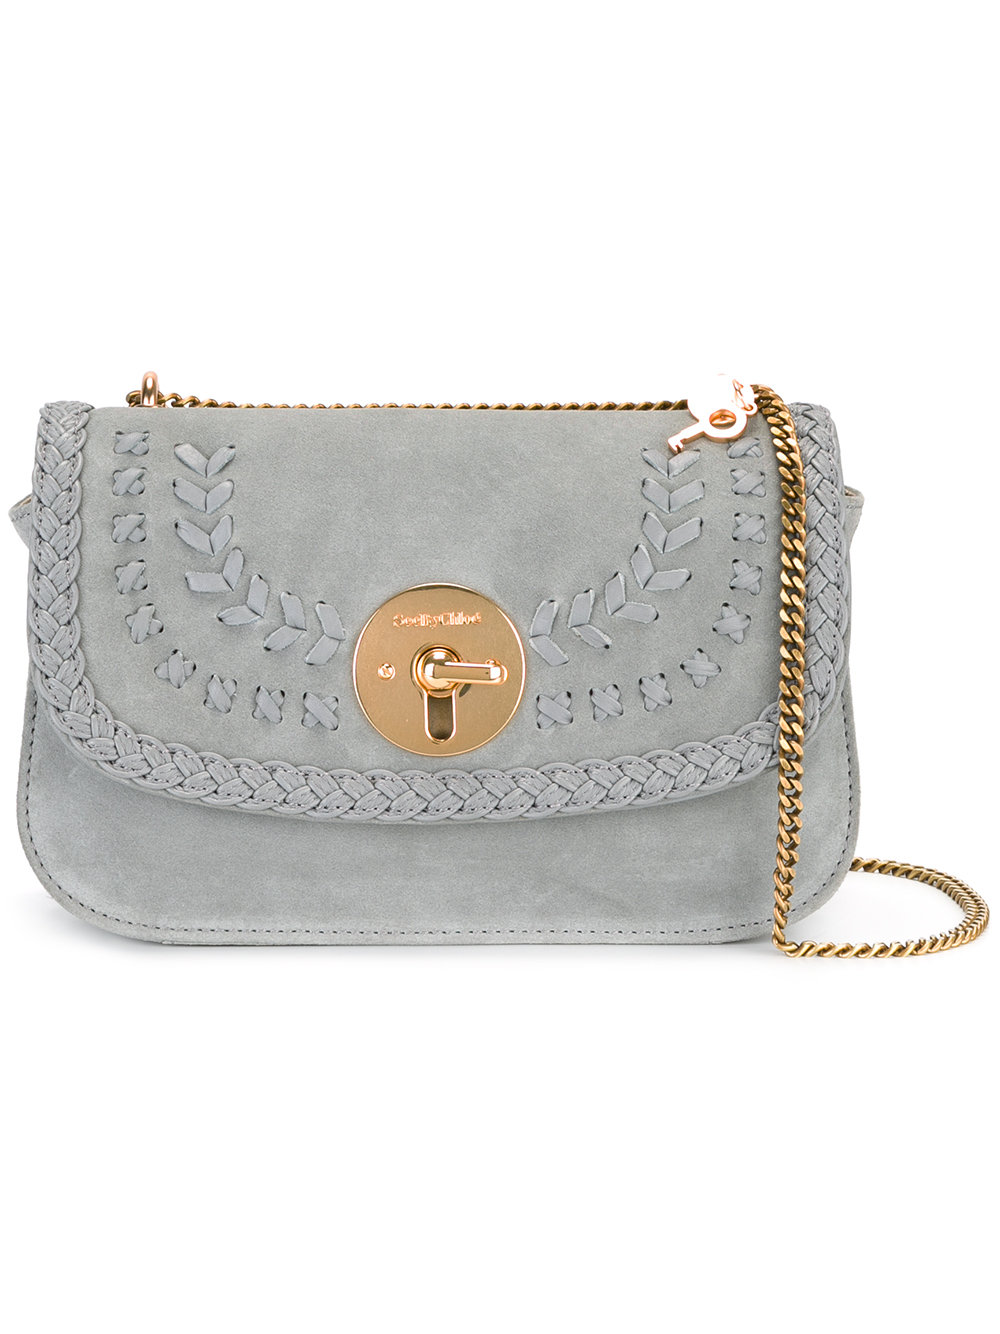 See By Chloé CLUTCHES